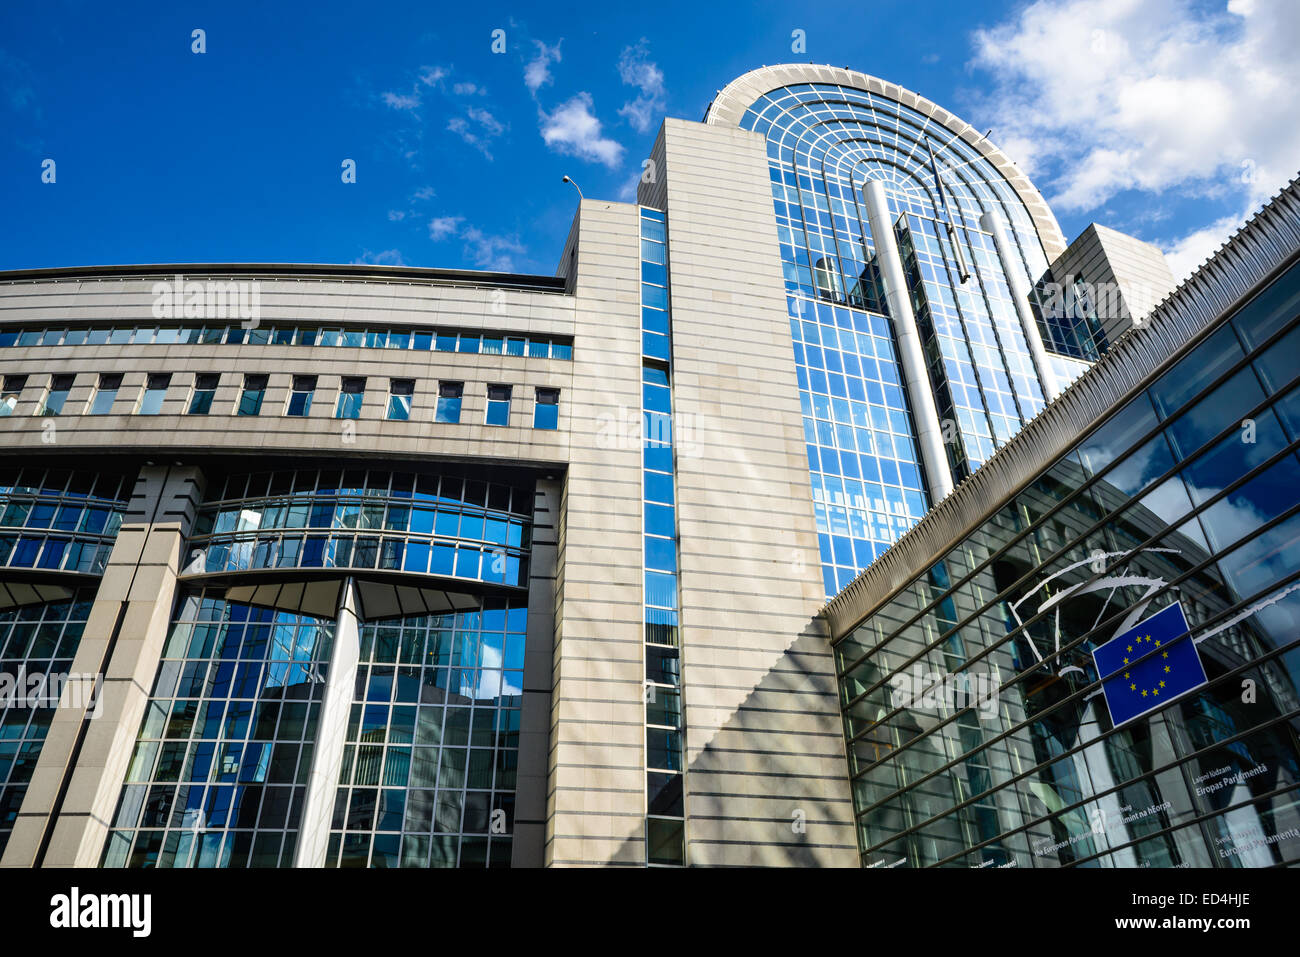 European Parliament in Brussels, Belgium, directly elected parliamentary institution of the European Union (EU). - Stock Image